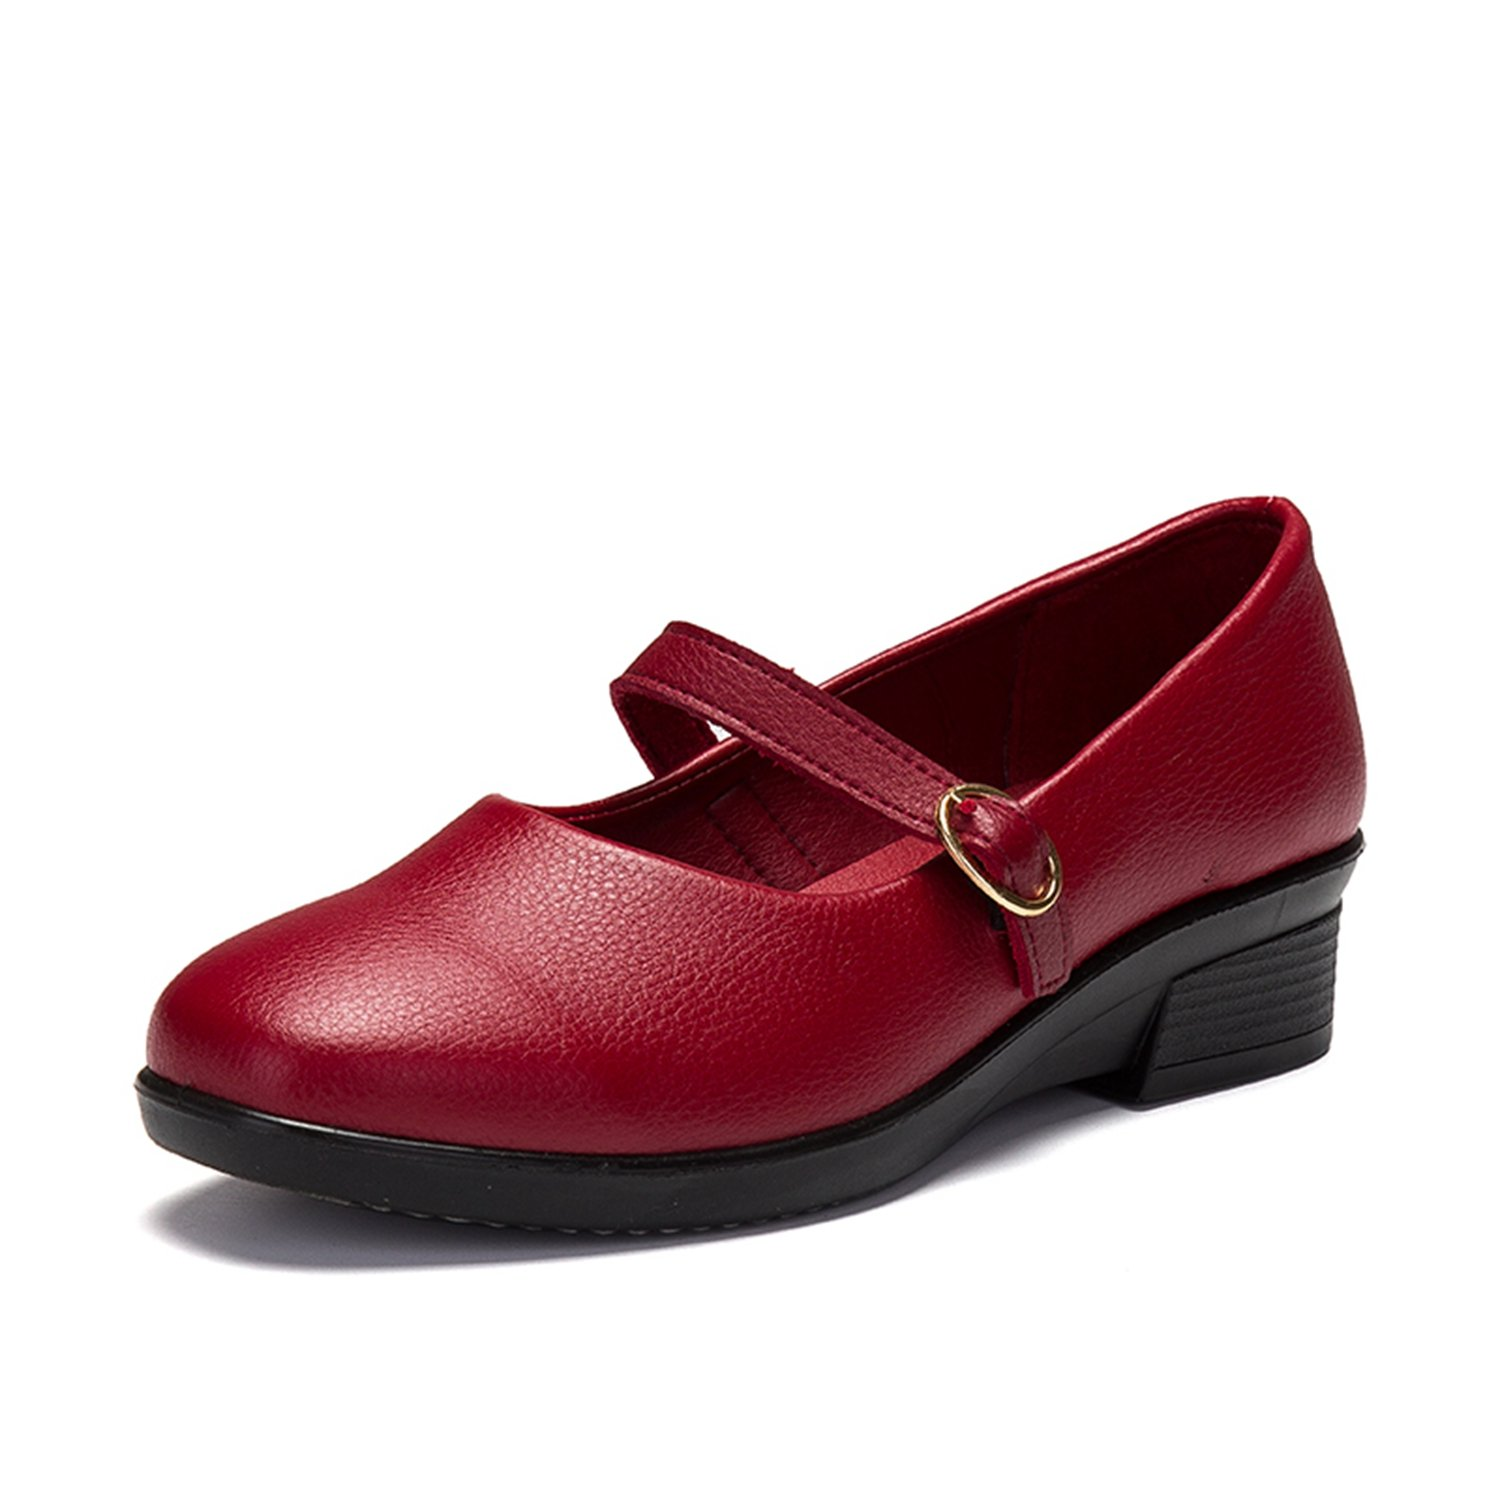 Nomioce , Sandales Red Sandales Plateforme Femme B000W069PS Red 1b1d6d6 - gis9ma7le.space